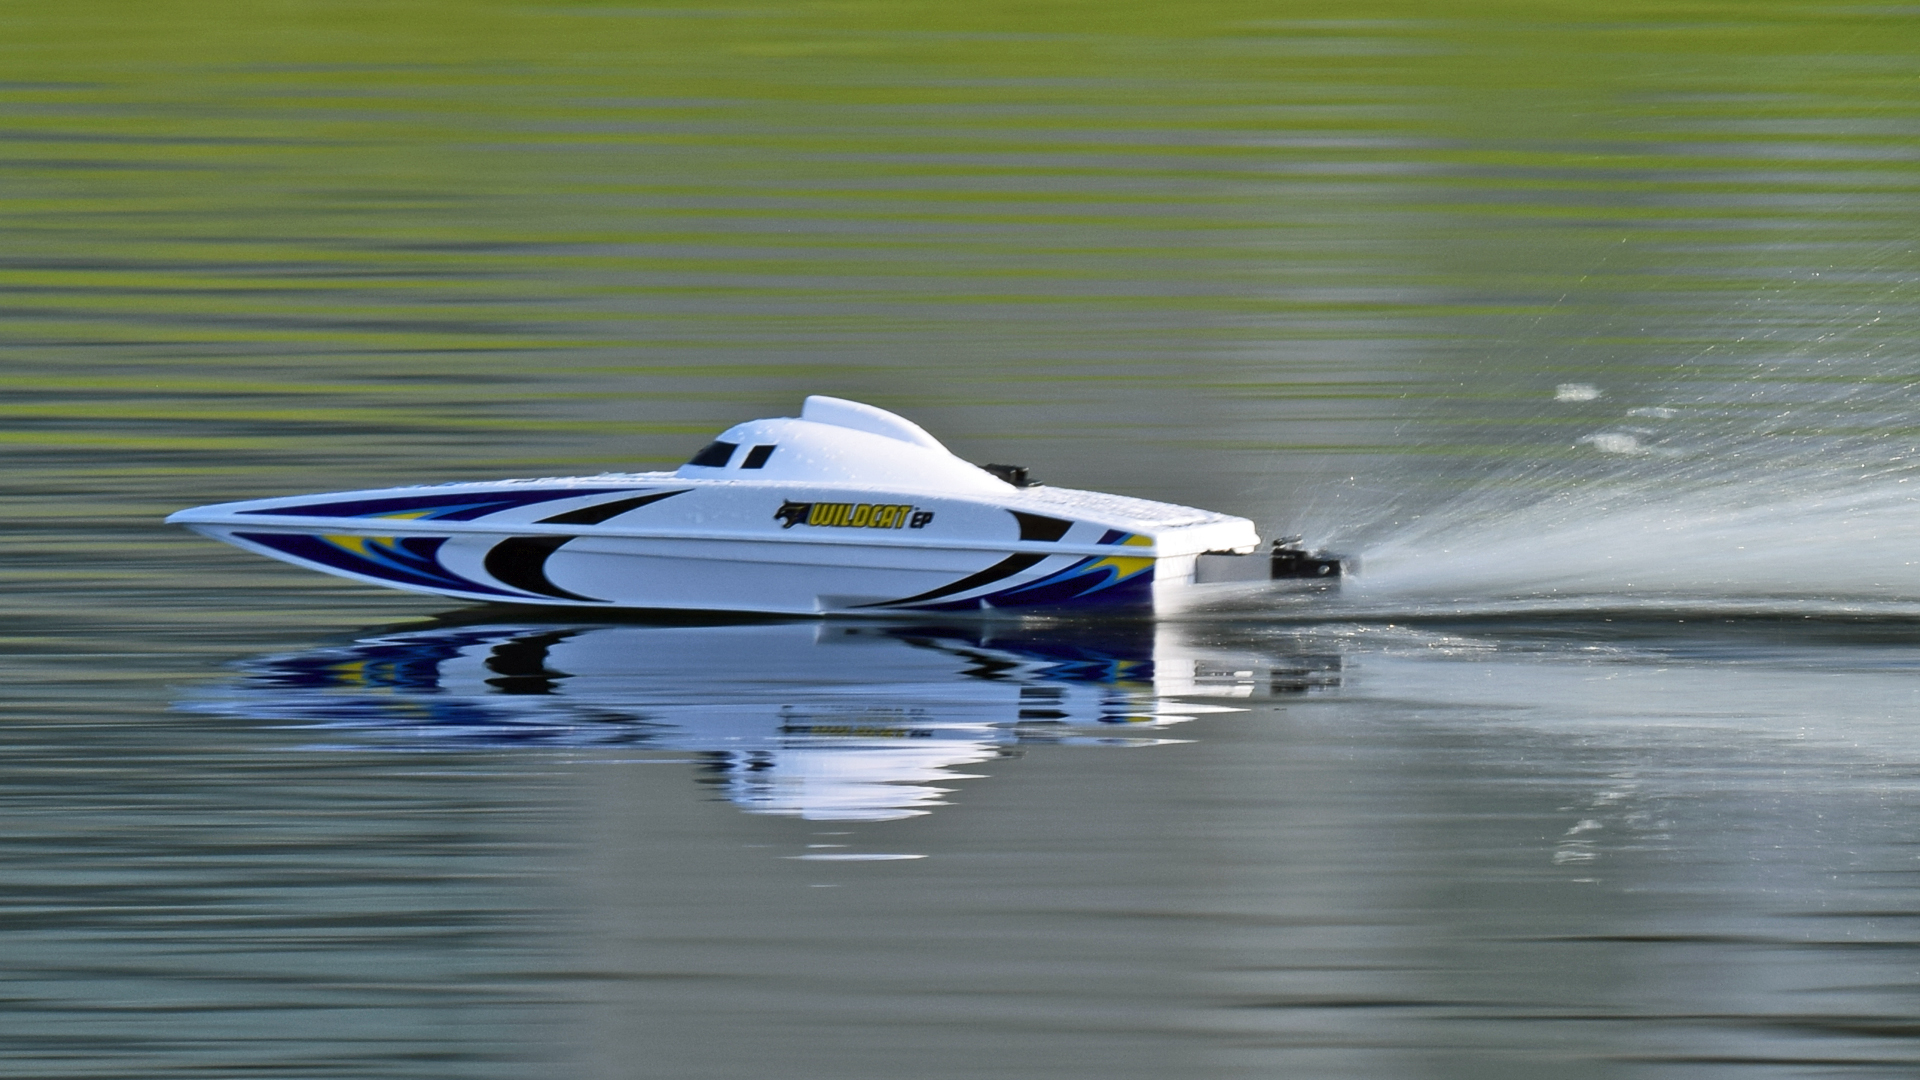 Testing: Aquacraft Wildcat EP RC Boat - Tested